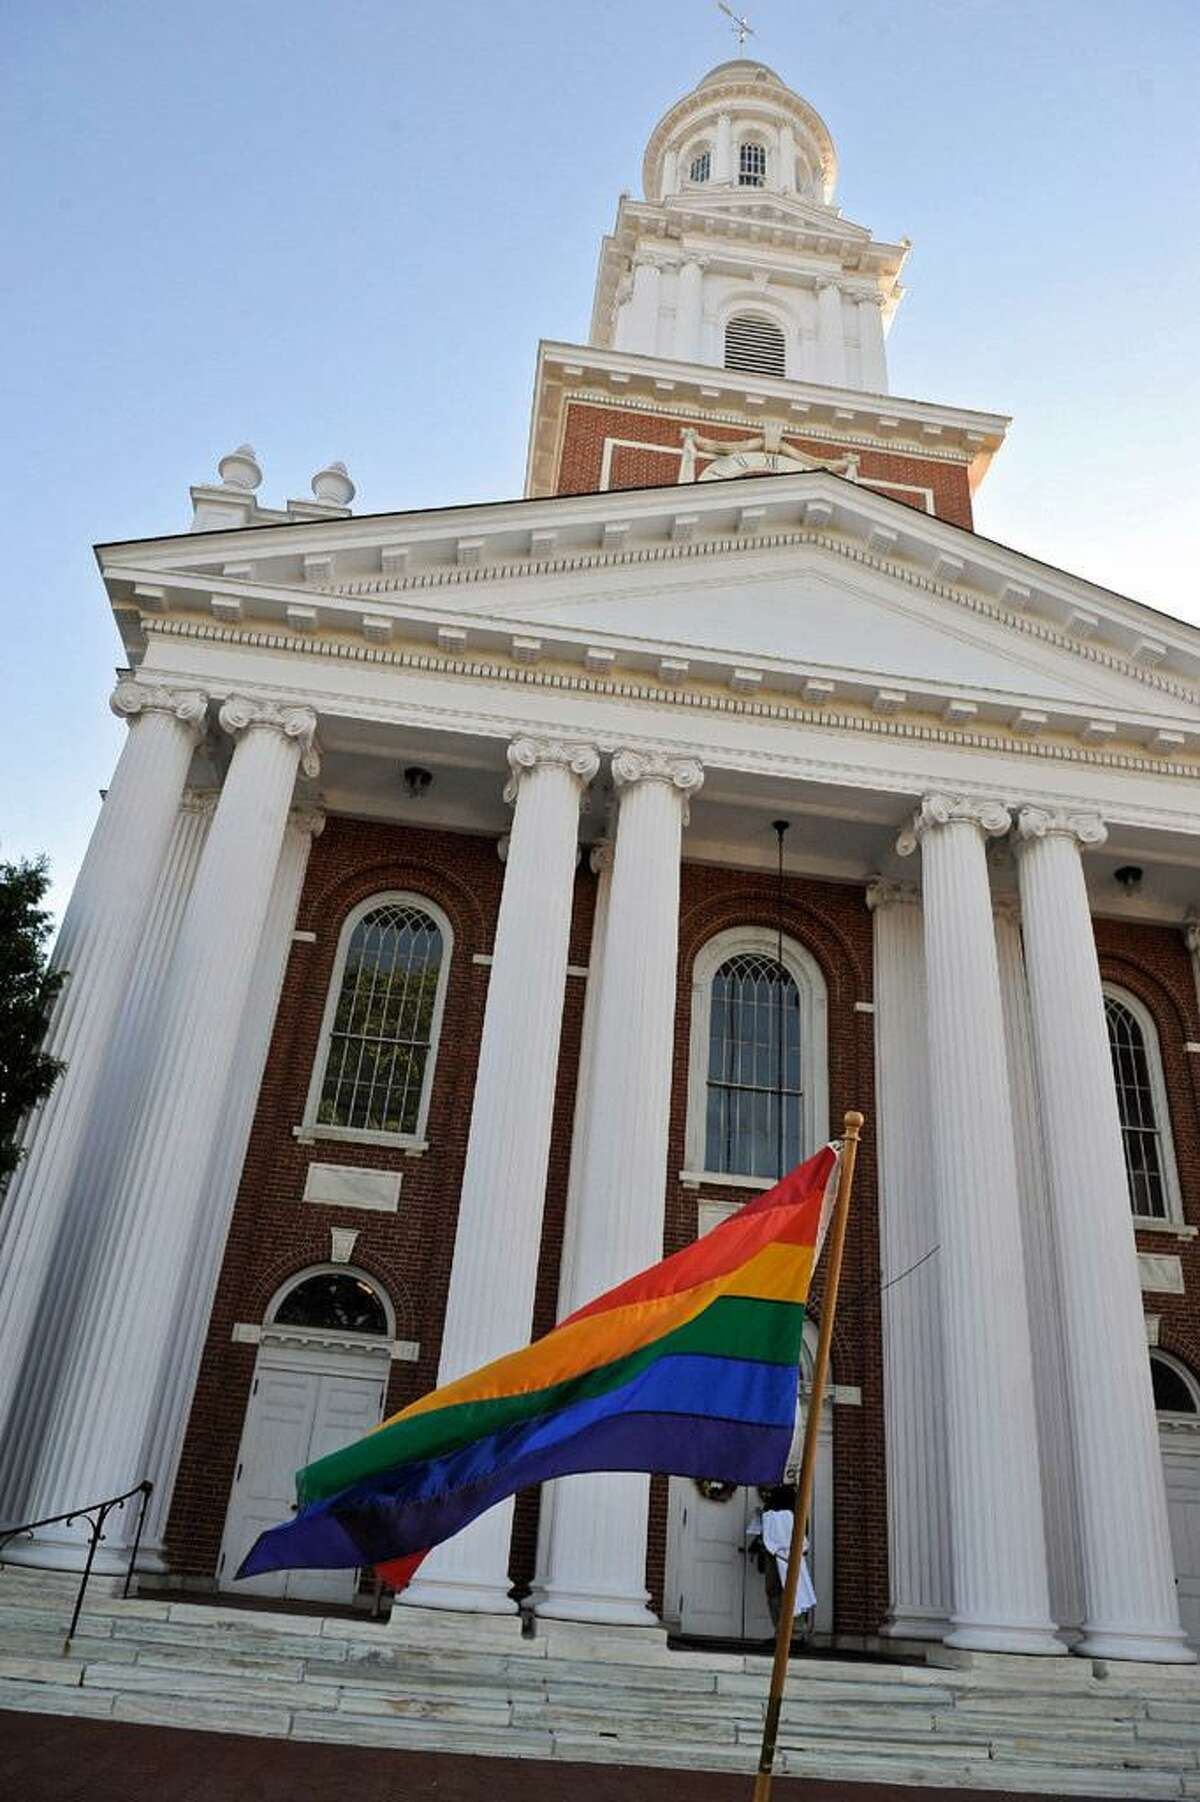 A rainbow flag flies in front of the First Congregational Church of Danbury during a 2016 vigil to honor those killed in the nightclub shooting in Orlando, Fl.